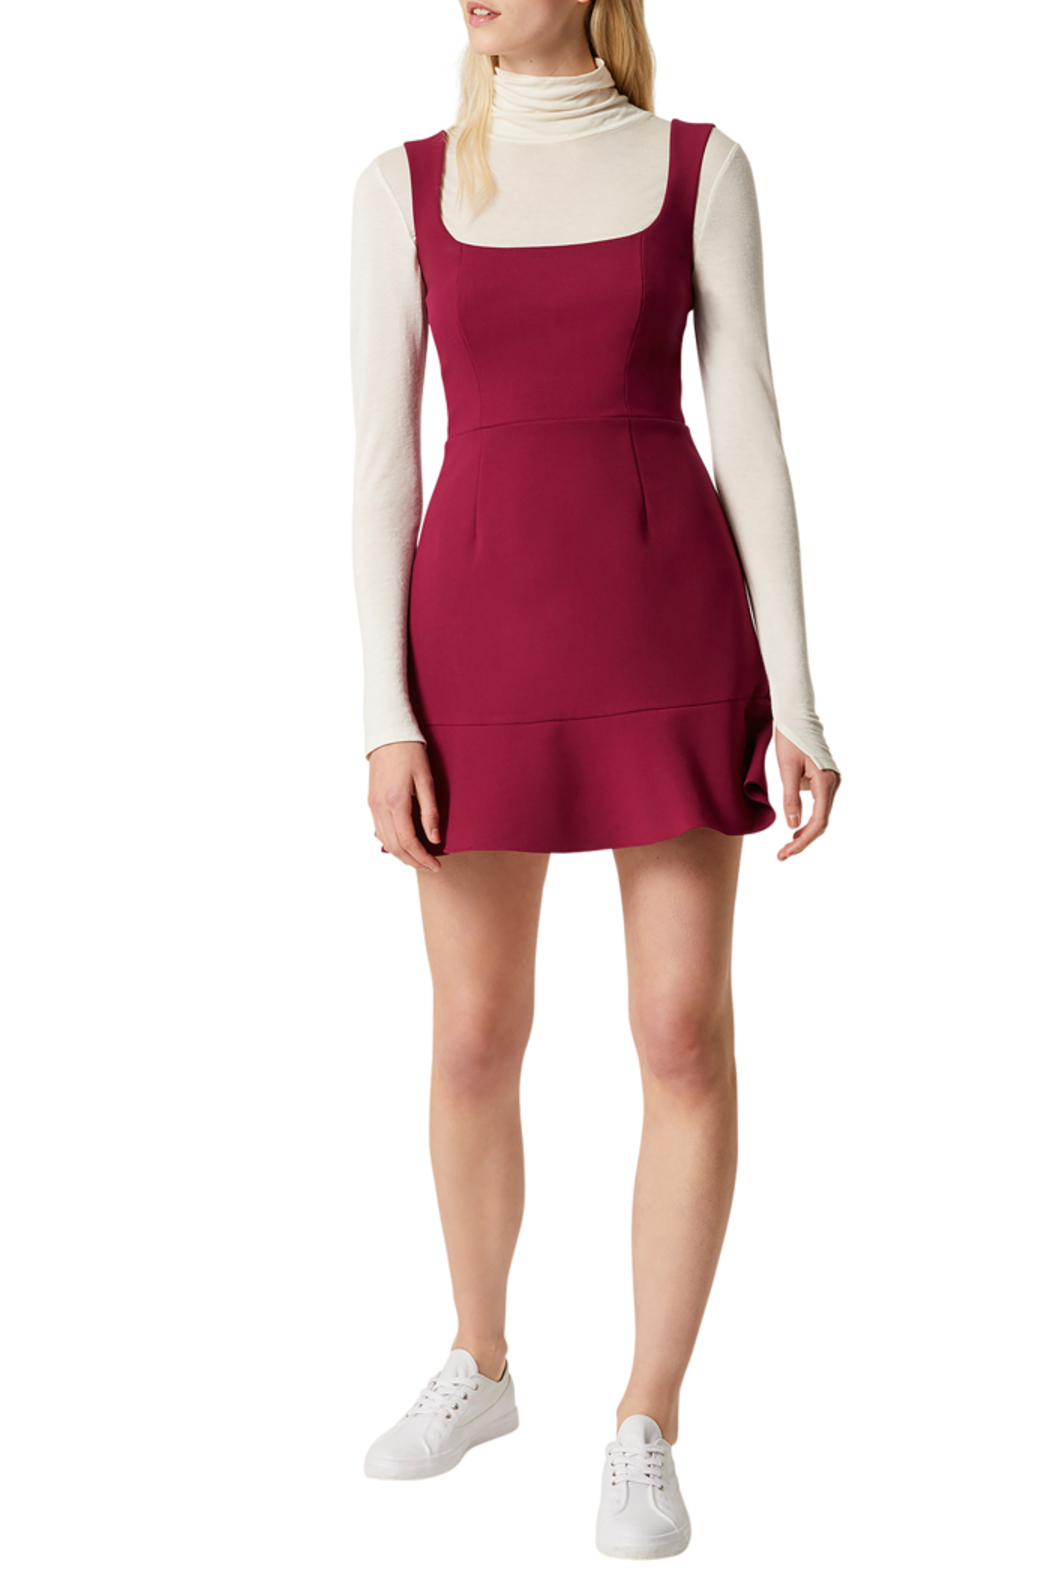 French Connection DOROTEA FLARE DRESS - Back Cropped Image